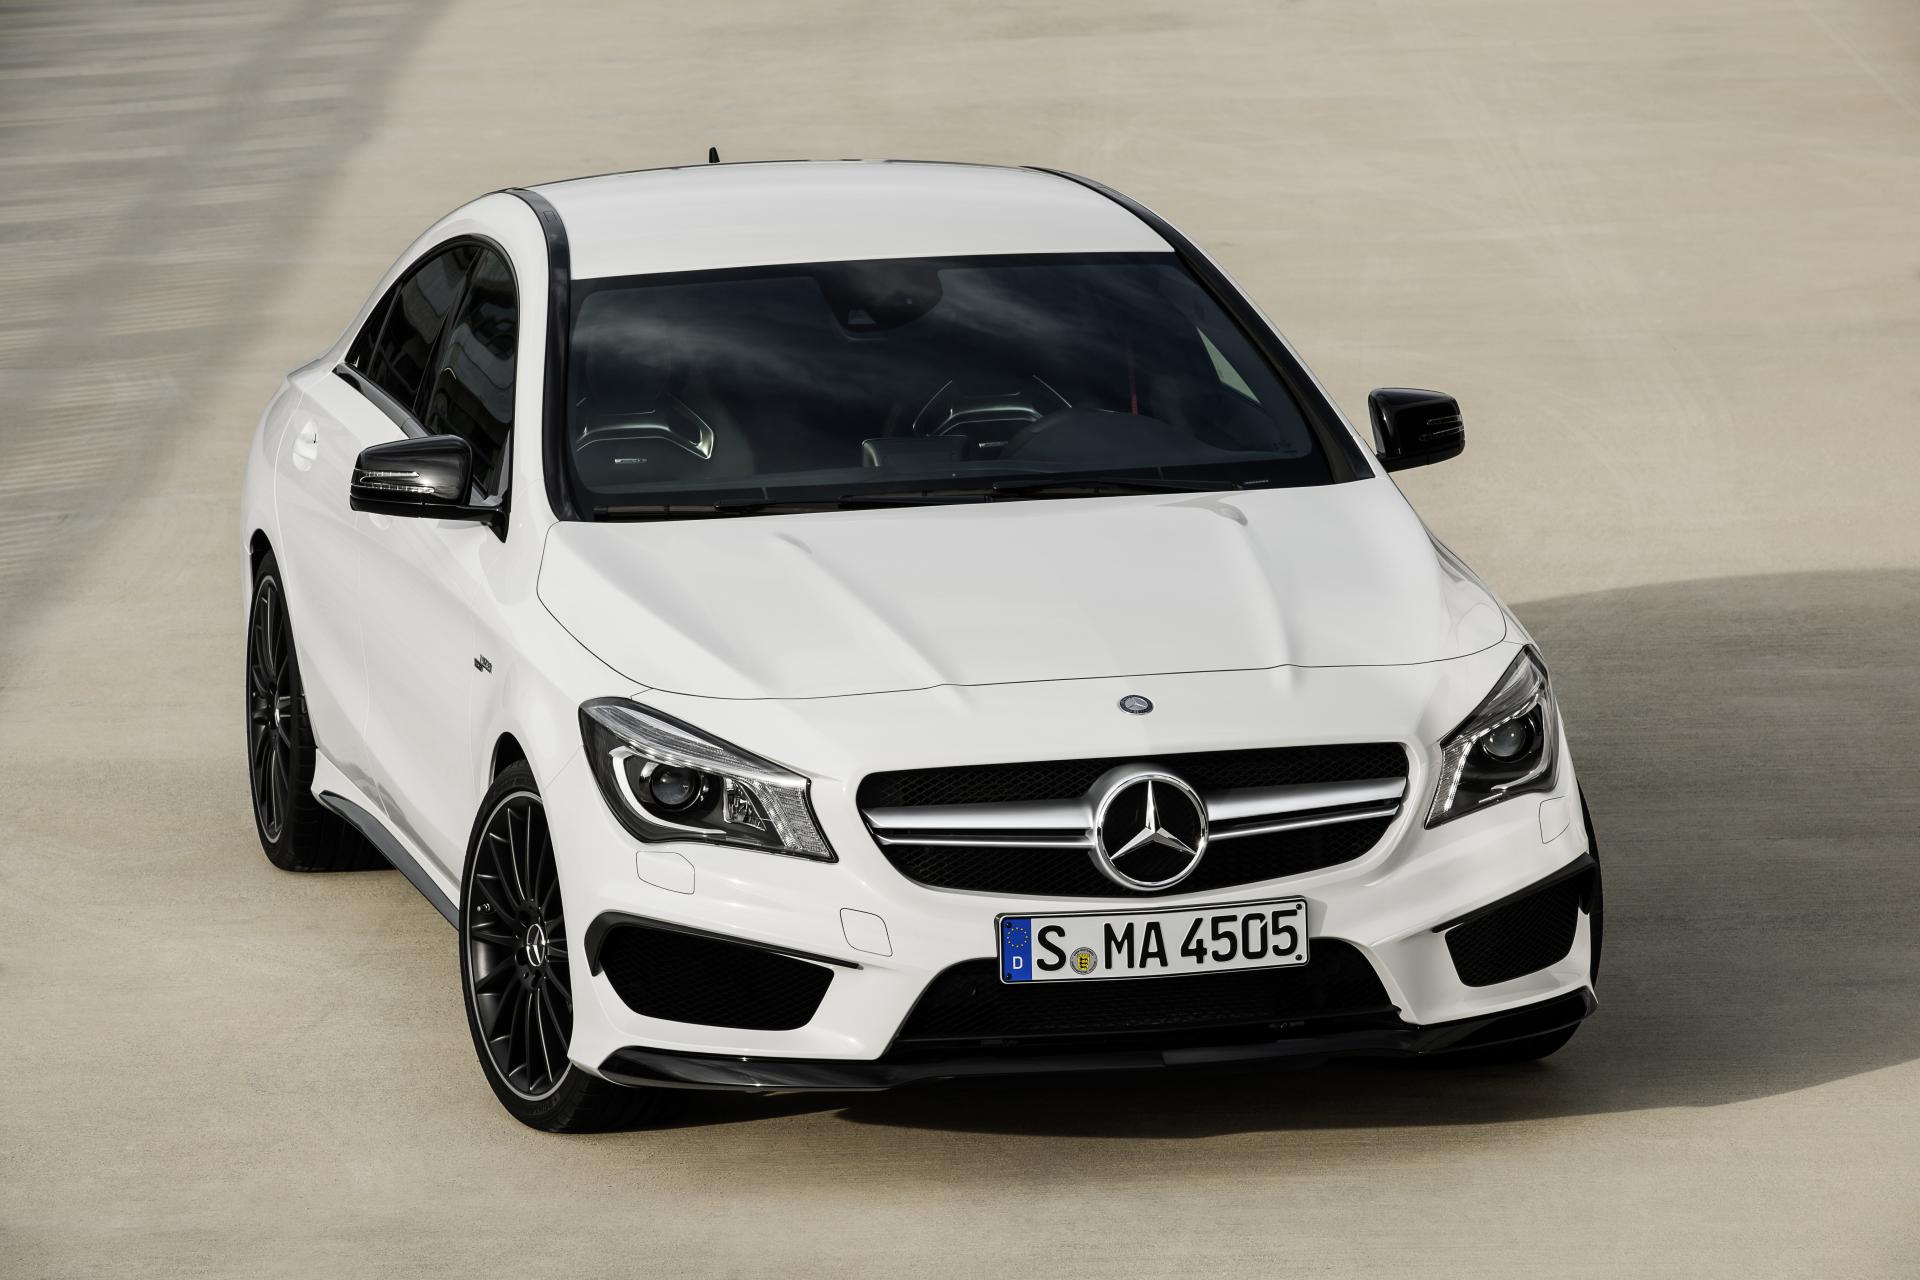 2014 mercedes benz cla 45 amg for Mercedes benz amg cla 45